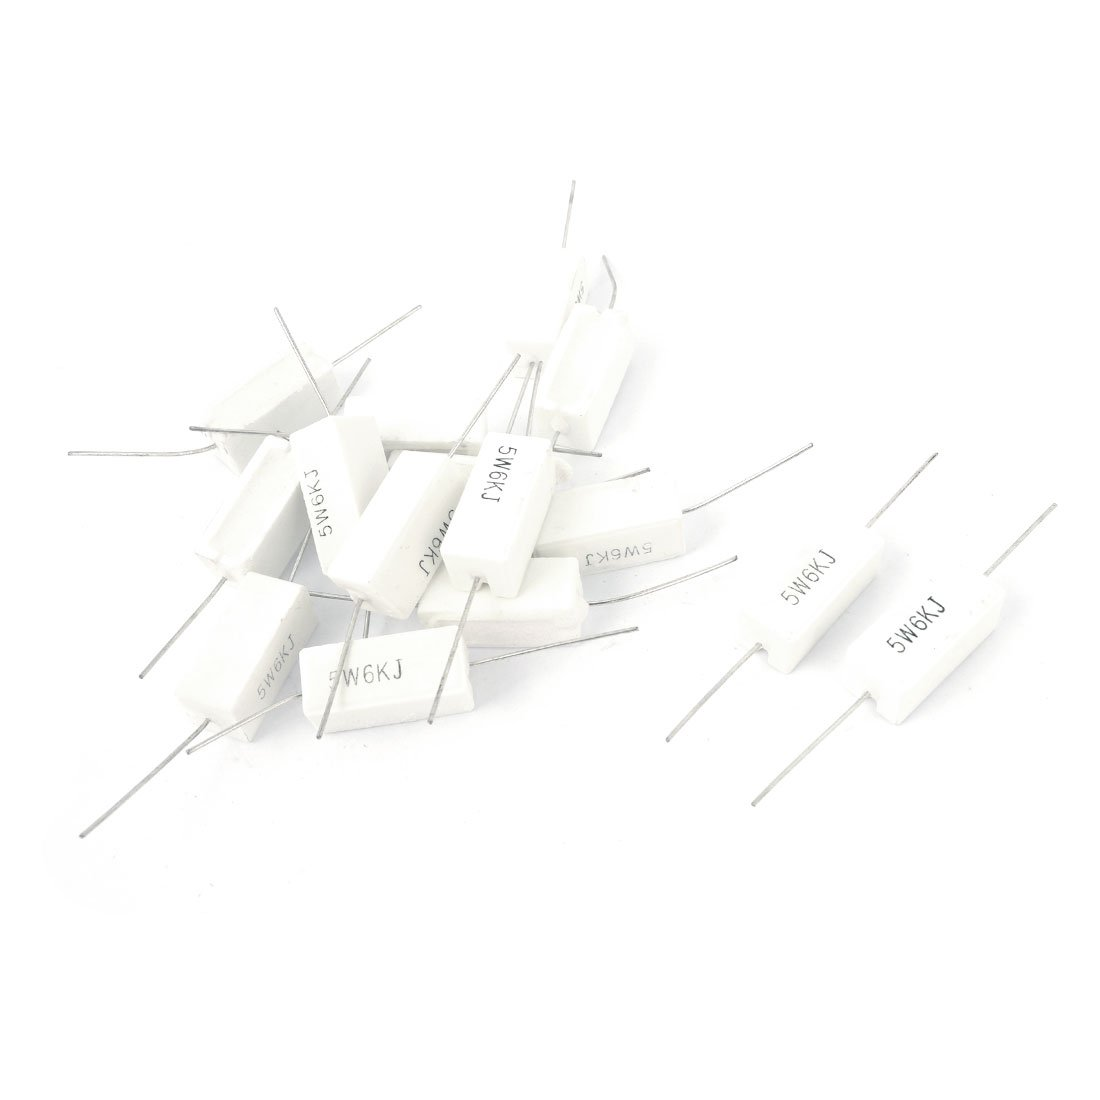 35 Resistance 5/% Cement Resistor,Ltvystore 30Packs 5W 20K Ohm Axial Lead Fixed Ceramic Cement Resistors 0 87 x 0 35 Resistance 5/% Ltvystore 30Packs 5W 20K Ohm Axial Lead Fixed Ceramic Cement Resistors 0 87 x 0 39 x 0 39 x 0